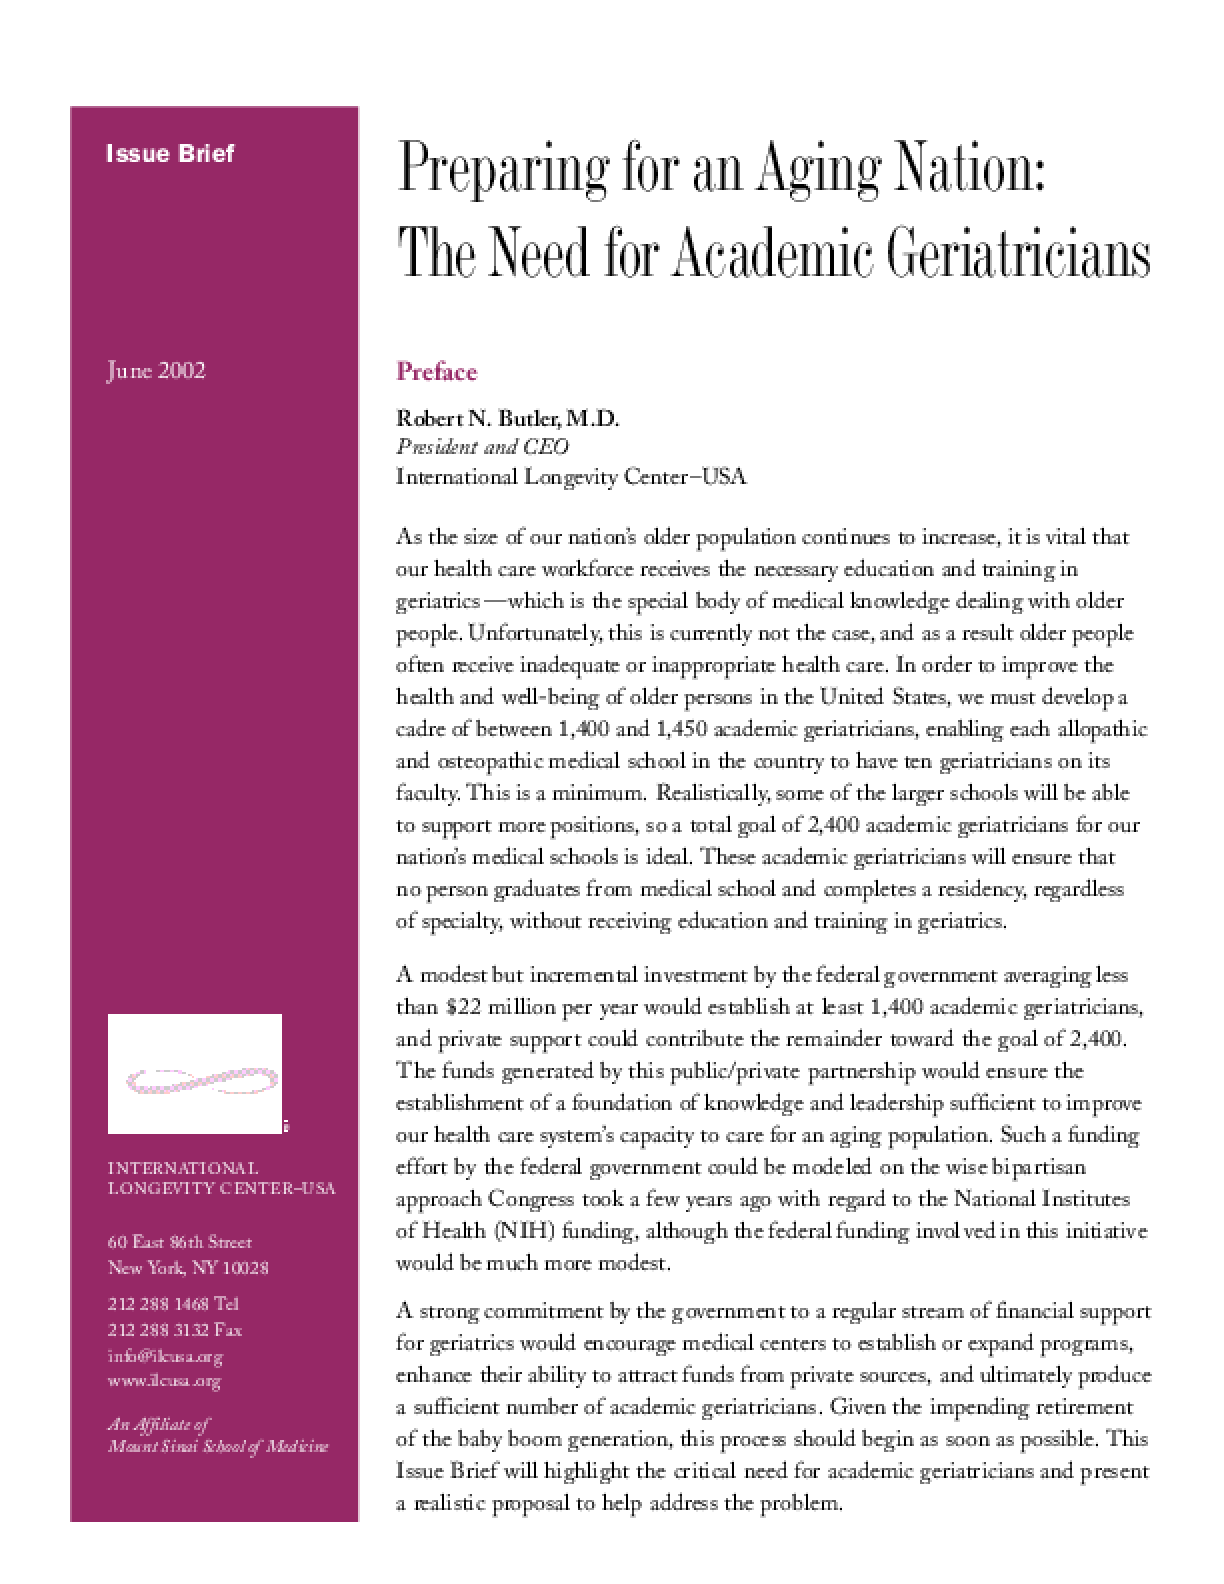 Preparing for an Aging Nation: The Need for Academic Geriatricians